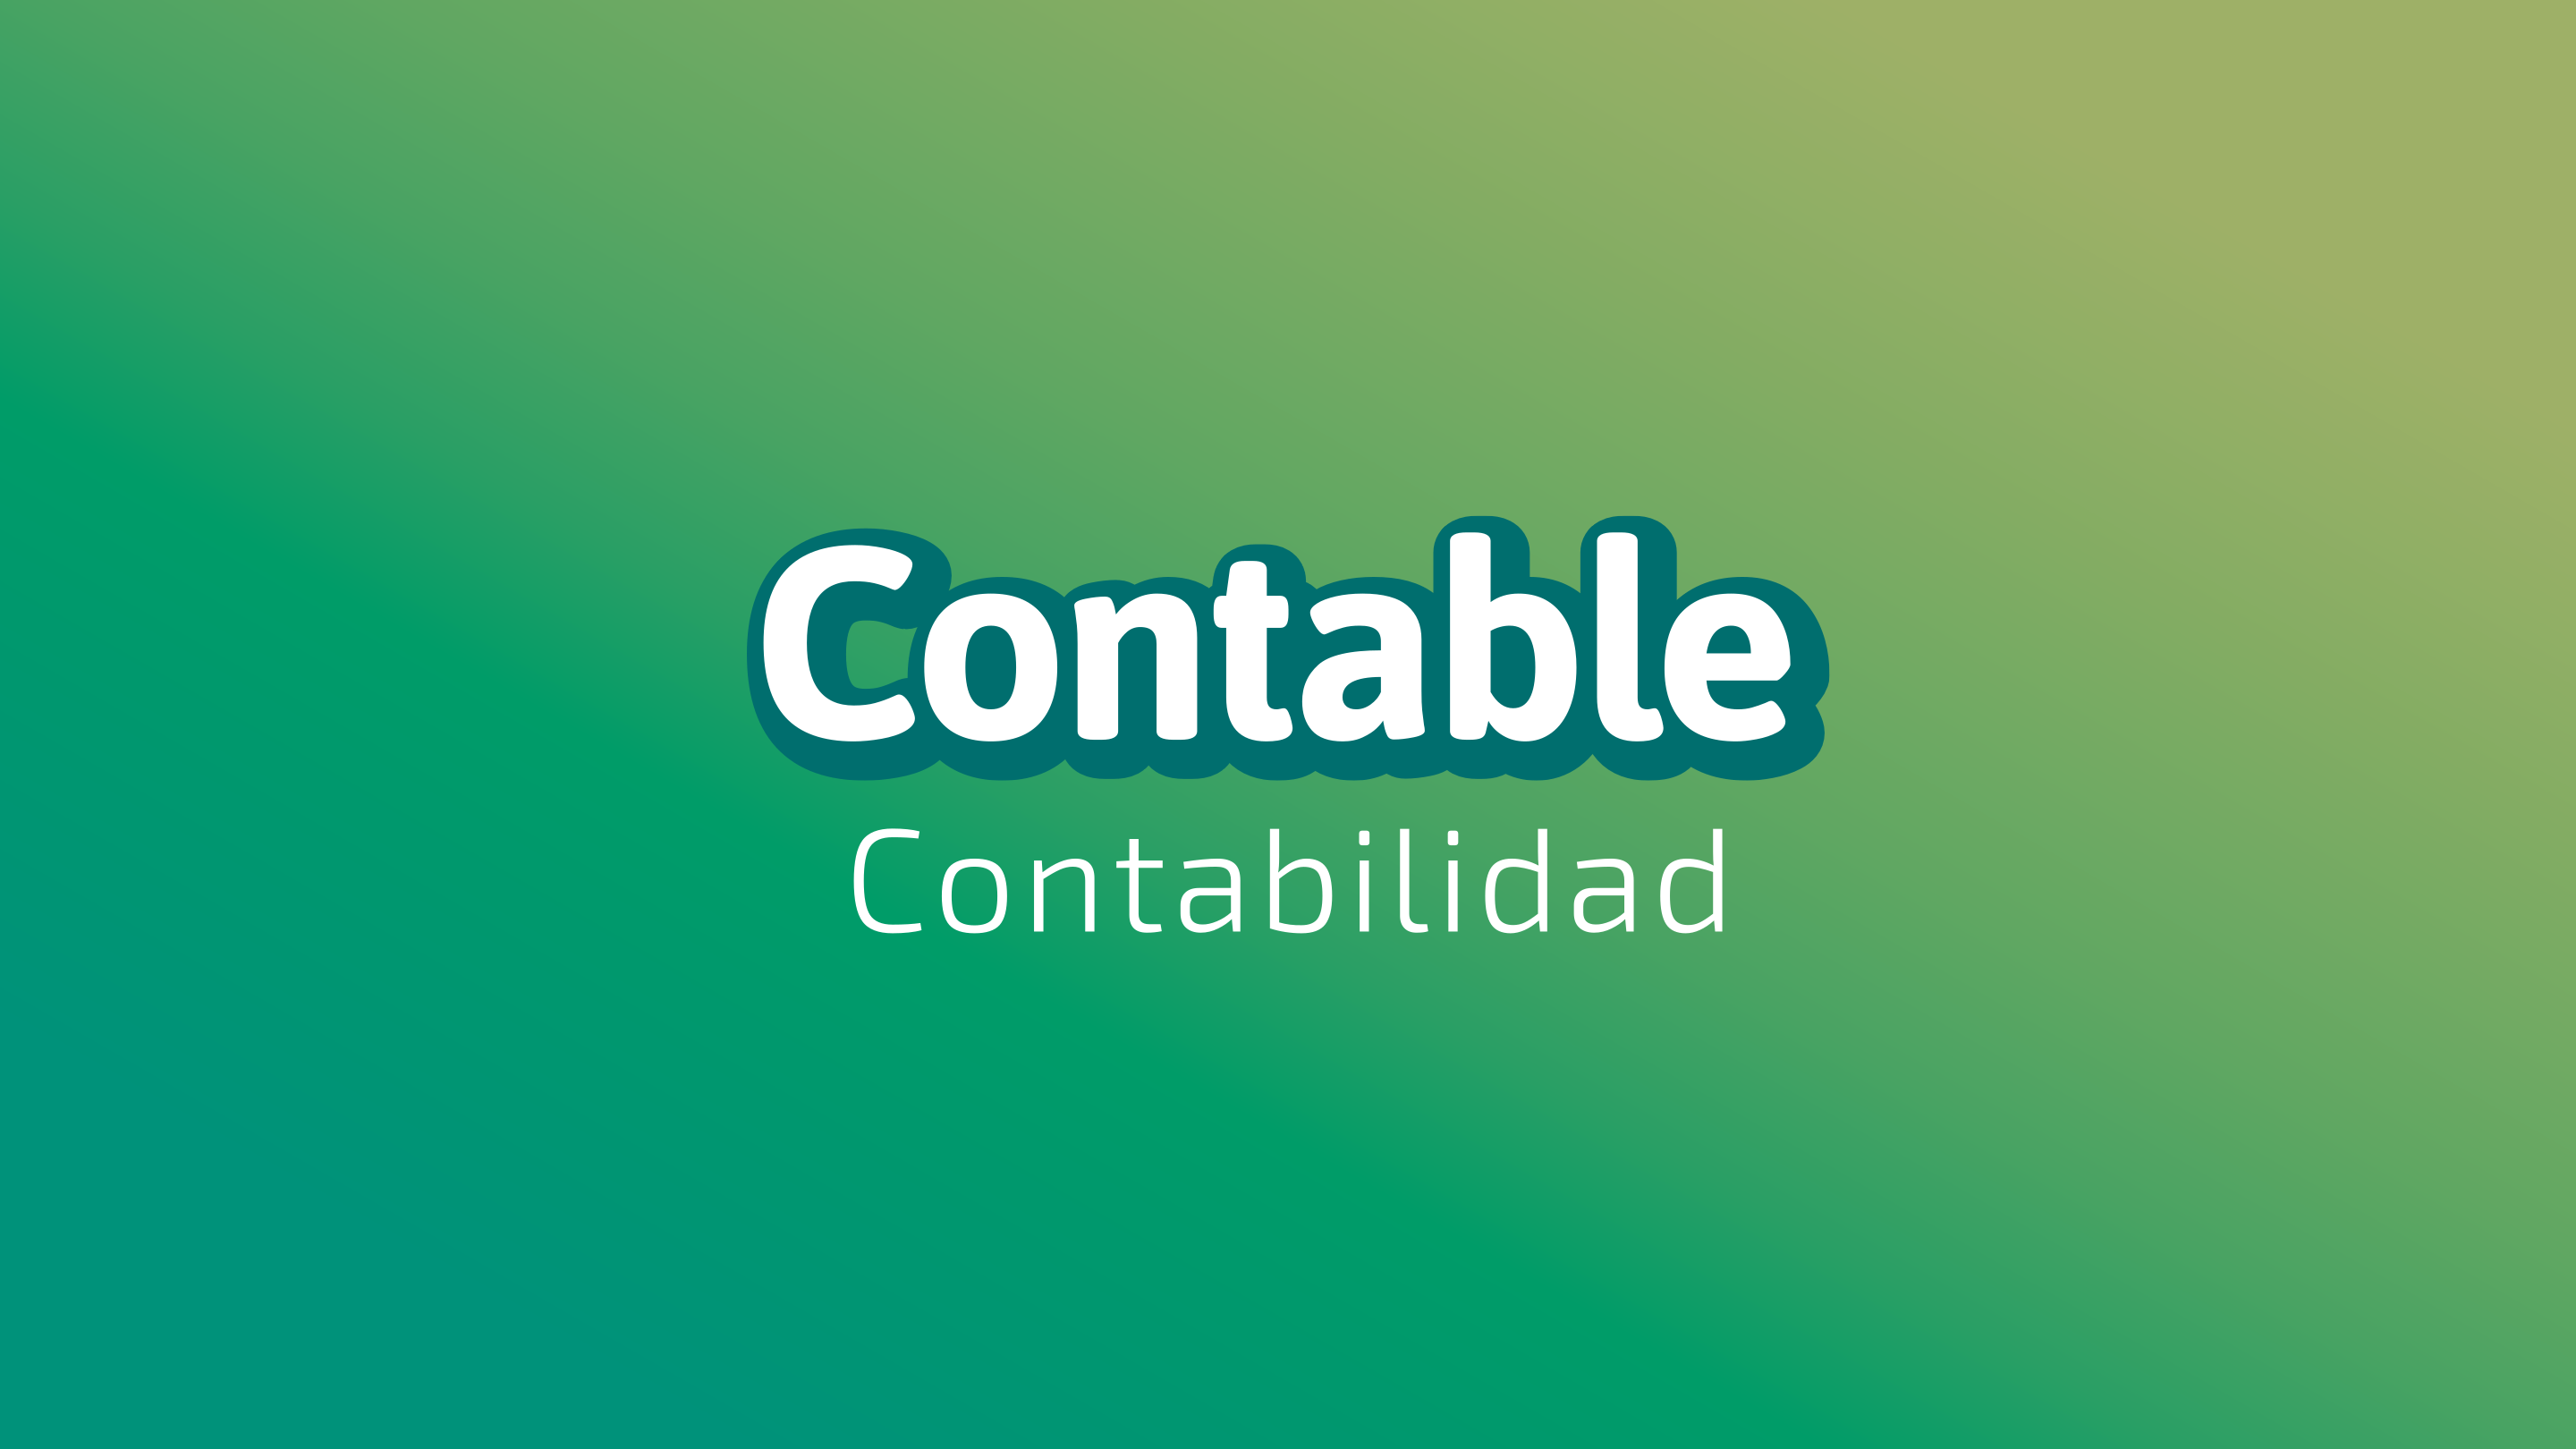 Contable